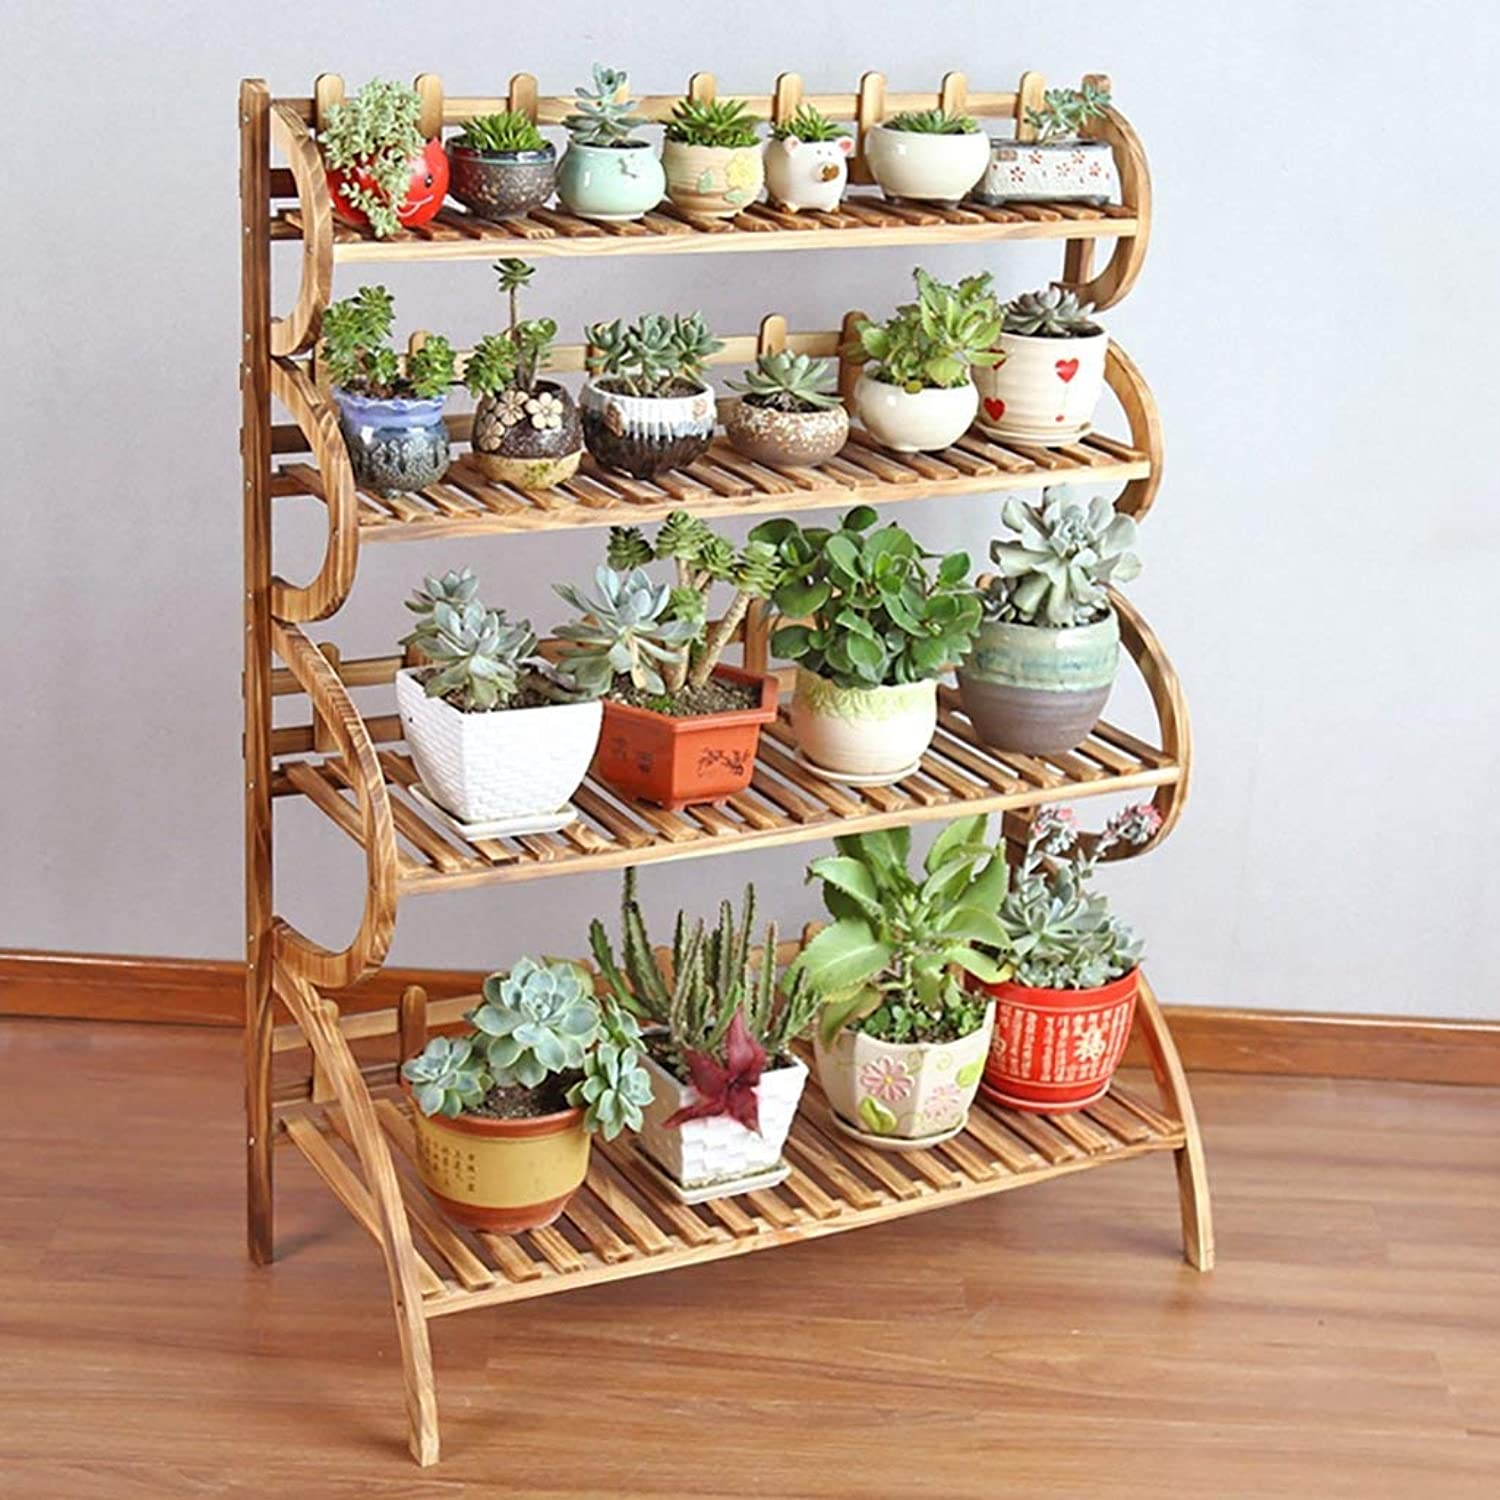 Shiyanghang Outdoor Indoor Display Plant Stand Simple and Fashionable Wood Flower Shelf, Garden Courtyard Balcony Living Room Plant Frame, Flower Plant Storage Rack (color   B, Size   90CM)